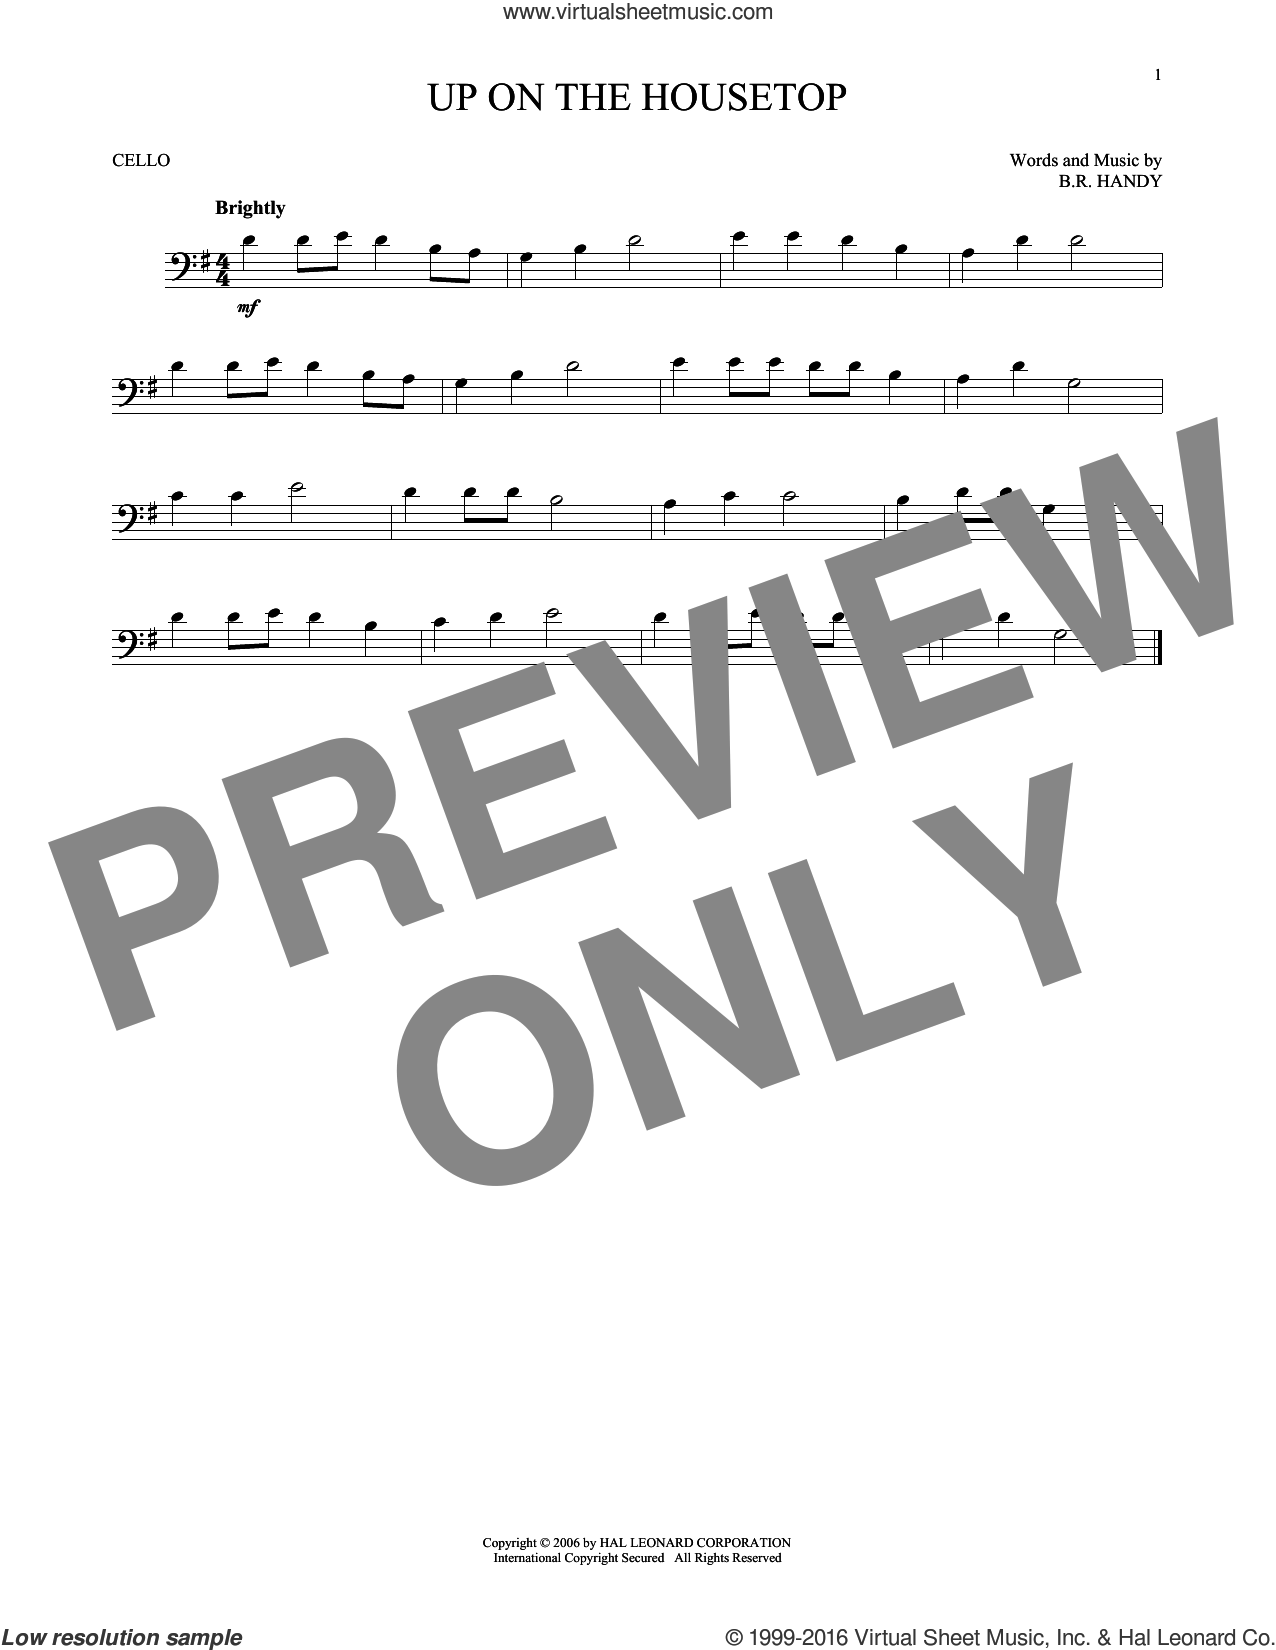 Up On The Housetop sheet music for cello solo by Benjamin Hanby, intermediate